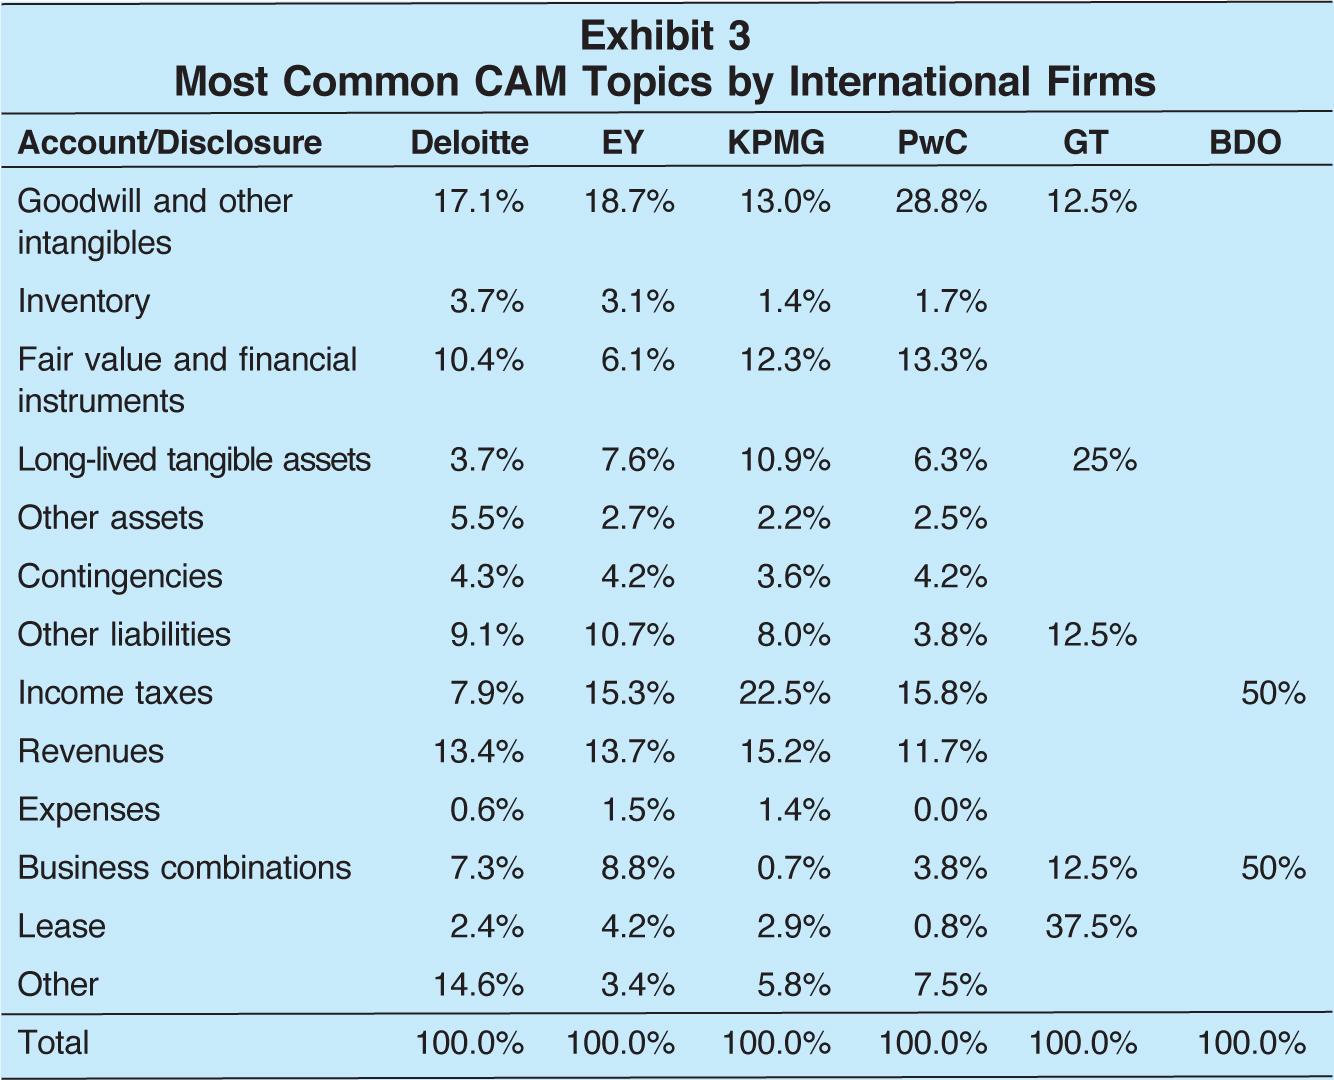 Account/Disclosure; Deloitte; EY; KPMG; PwC; GT; BDO Goodwill and other intangibles; 17.1%; 18.7%; 13.0%; 28.8%; 12.5% Inventory; 3.7%; 3.1%; 1.4%; 1.7% Fair value and financial instruments; 10.4%; 6.1%; 12.3%; 13.3% Long-lived tangible assets; 3.7%; 7.6%; 10.9%; 6.3%; 25% Other assets; 5.5%; 2.7%; 2.2%; 2.5% Contingencies; 4.3%; 4.2%; 3.6%; 4.2% Other liabilities; 9.1%; 10.7%; 8.0%; 3.8%; 12.5% Income taxes; 7.9%; 15.3%; 22.5%; 15.8%; 50% R;evenues 13.4%; 13.7%; 15.2%; 11.7% Expenses; 0.6%; 1.5%; 1.4%; 0.0% Business combinations; 7.3%; 8.8%; 0.7%; 3.8%; 12.5%; 50% Lease; 2.4%; 4.2%; 2.9%; 0.8%; 37.5% Other; 14.6%; 3.4%; 5.8%; 7.5% Total; 100.0%; 100.0%; 100.0%; 100.0%; 100.0%; 100.0%